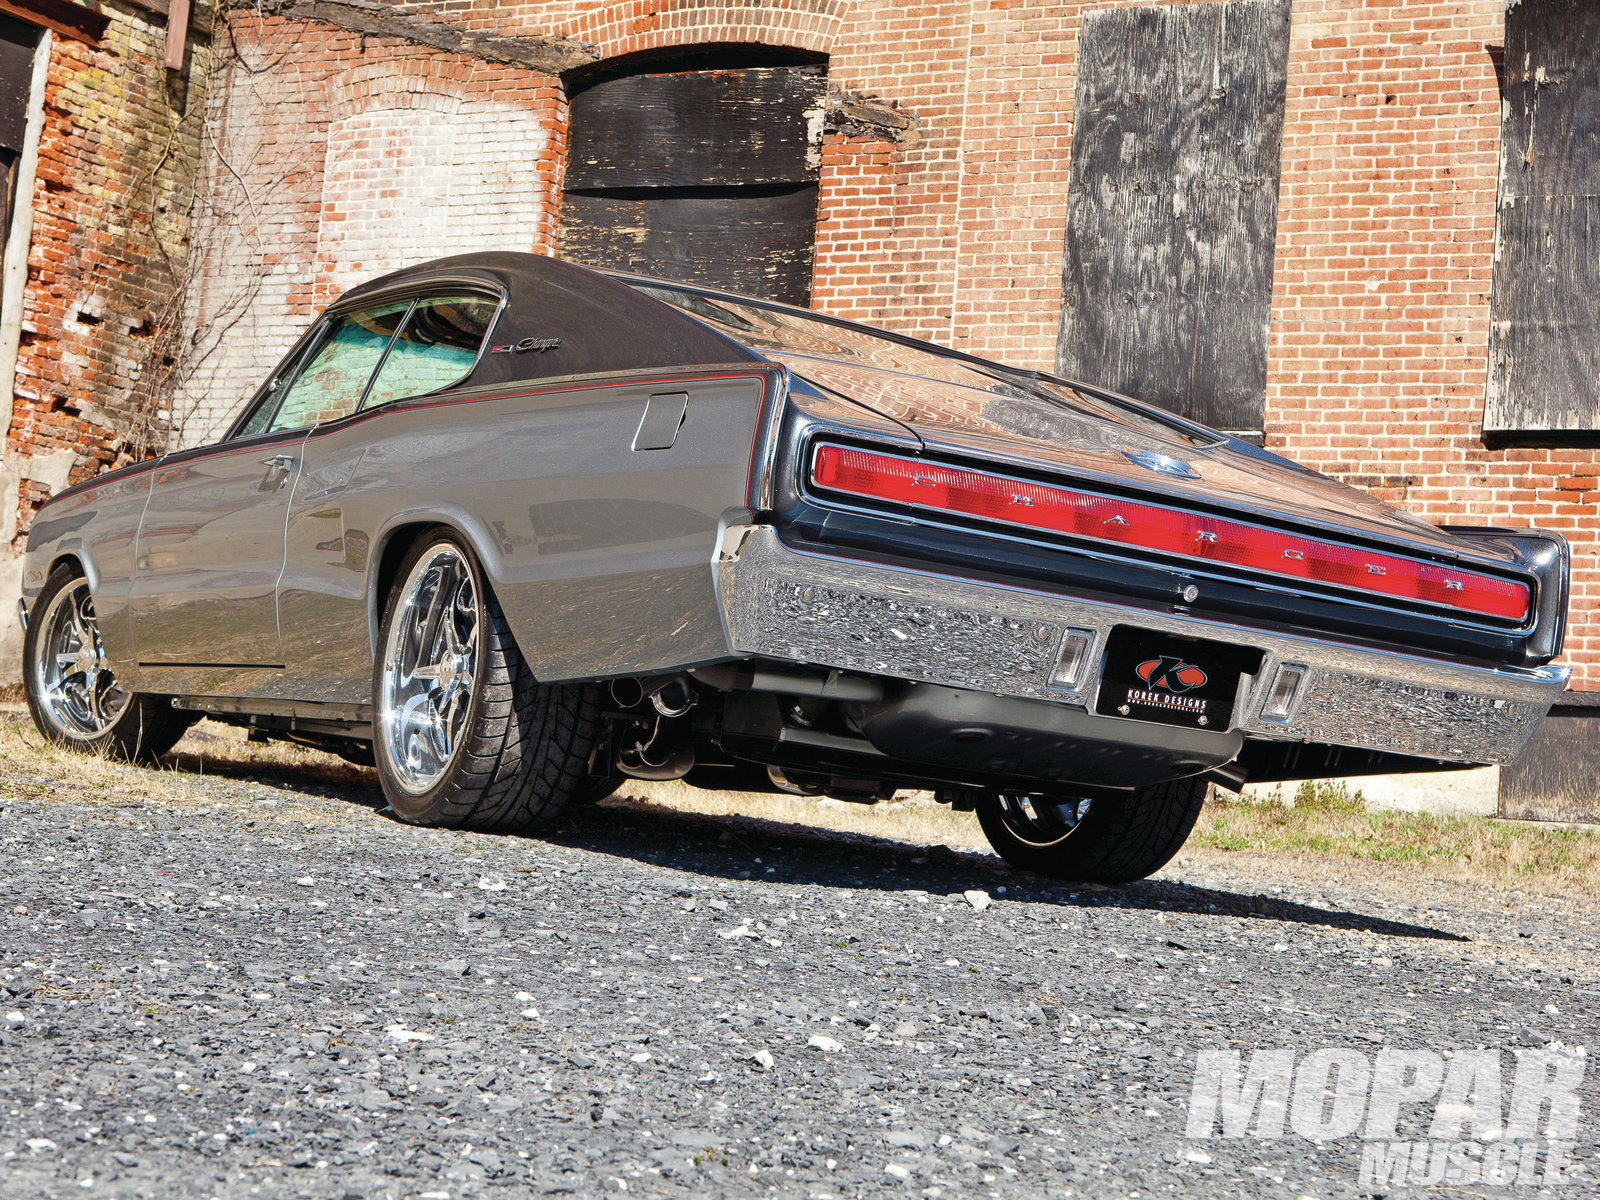 Underneath, Reilly Motorsports' high-tech suspension joins with a big tti/Magnaflow exhaust system and wide-tread Nitto tires for a big upgrade from the stock '66 chassis.